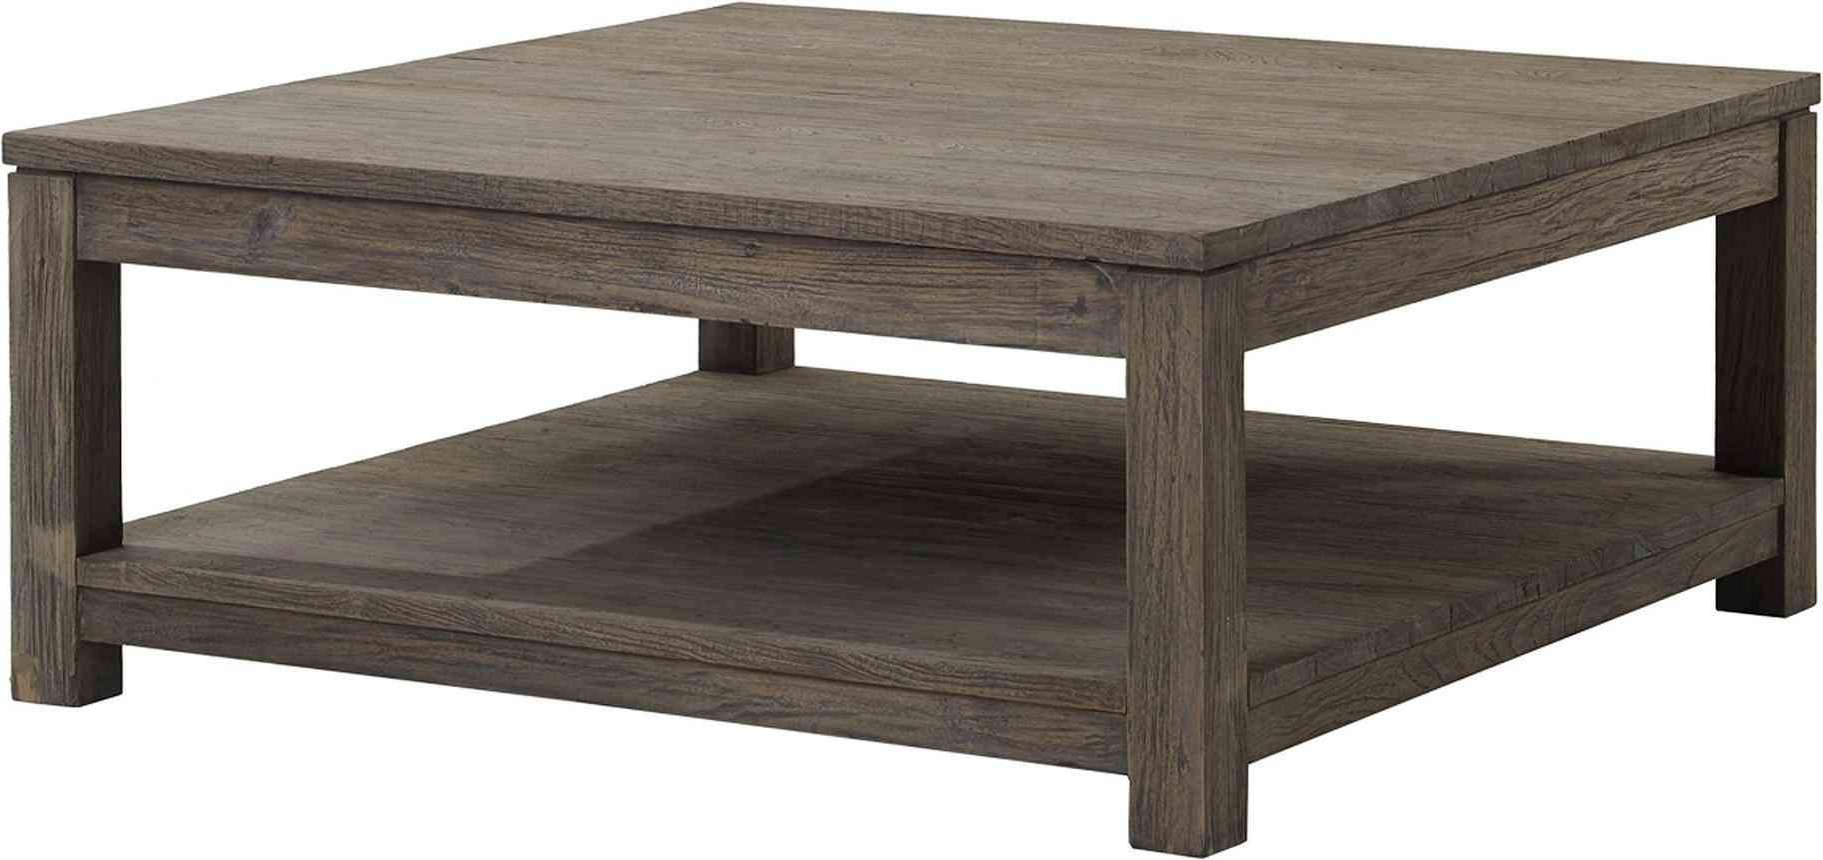 Latest Big Square Coffee Tables Intended For Coffee Tables : Round Leather Storage Ottoman Oversized Coffee (View 15 of 20)